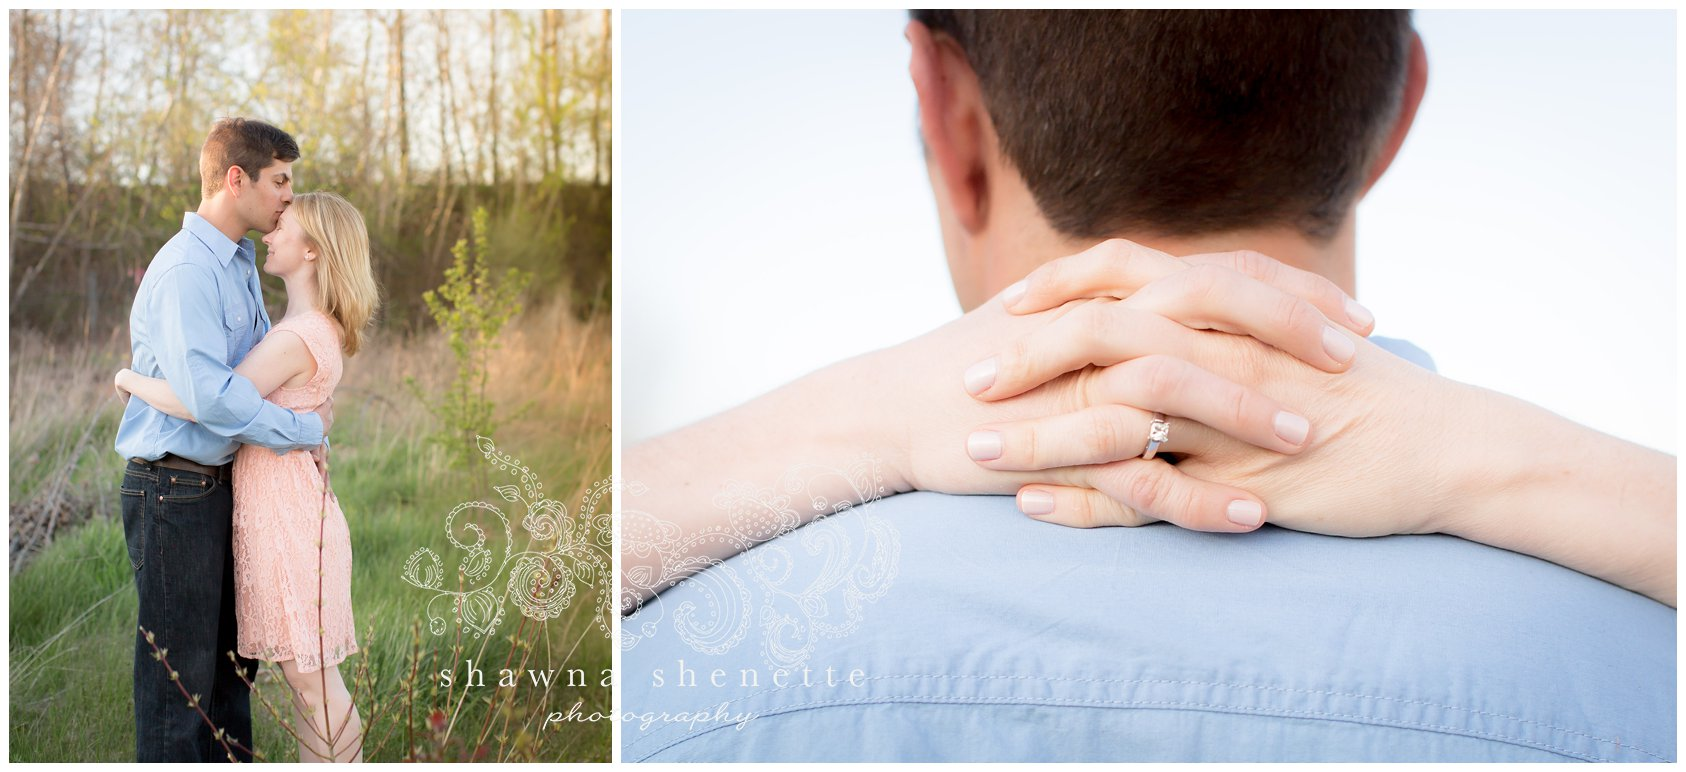 Best Massachusetts Wedding Photographer Engagement Photos Millbury Worcester Auburn Chocksett Inn Sterling